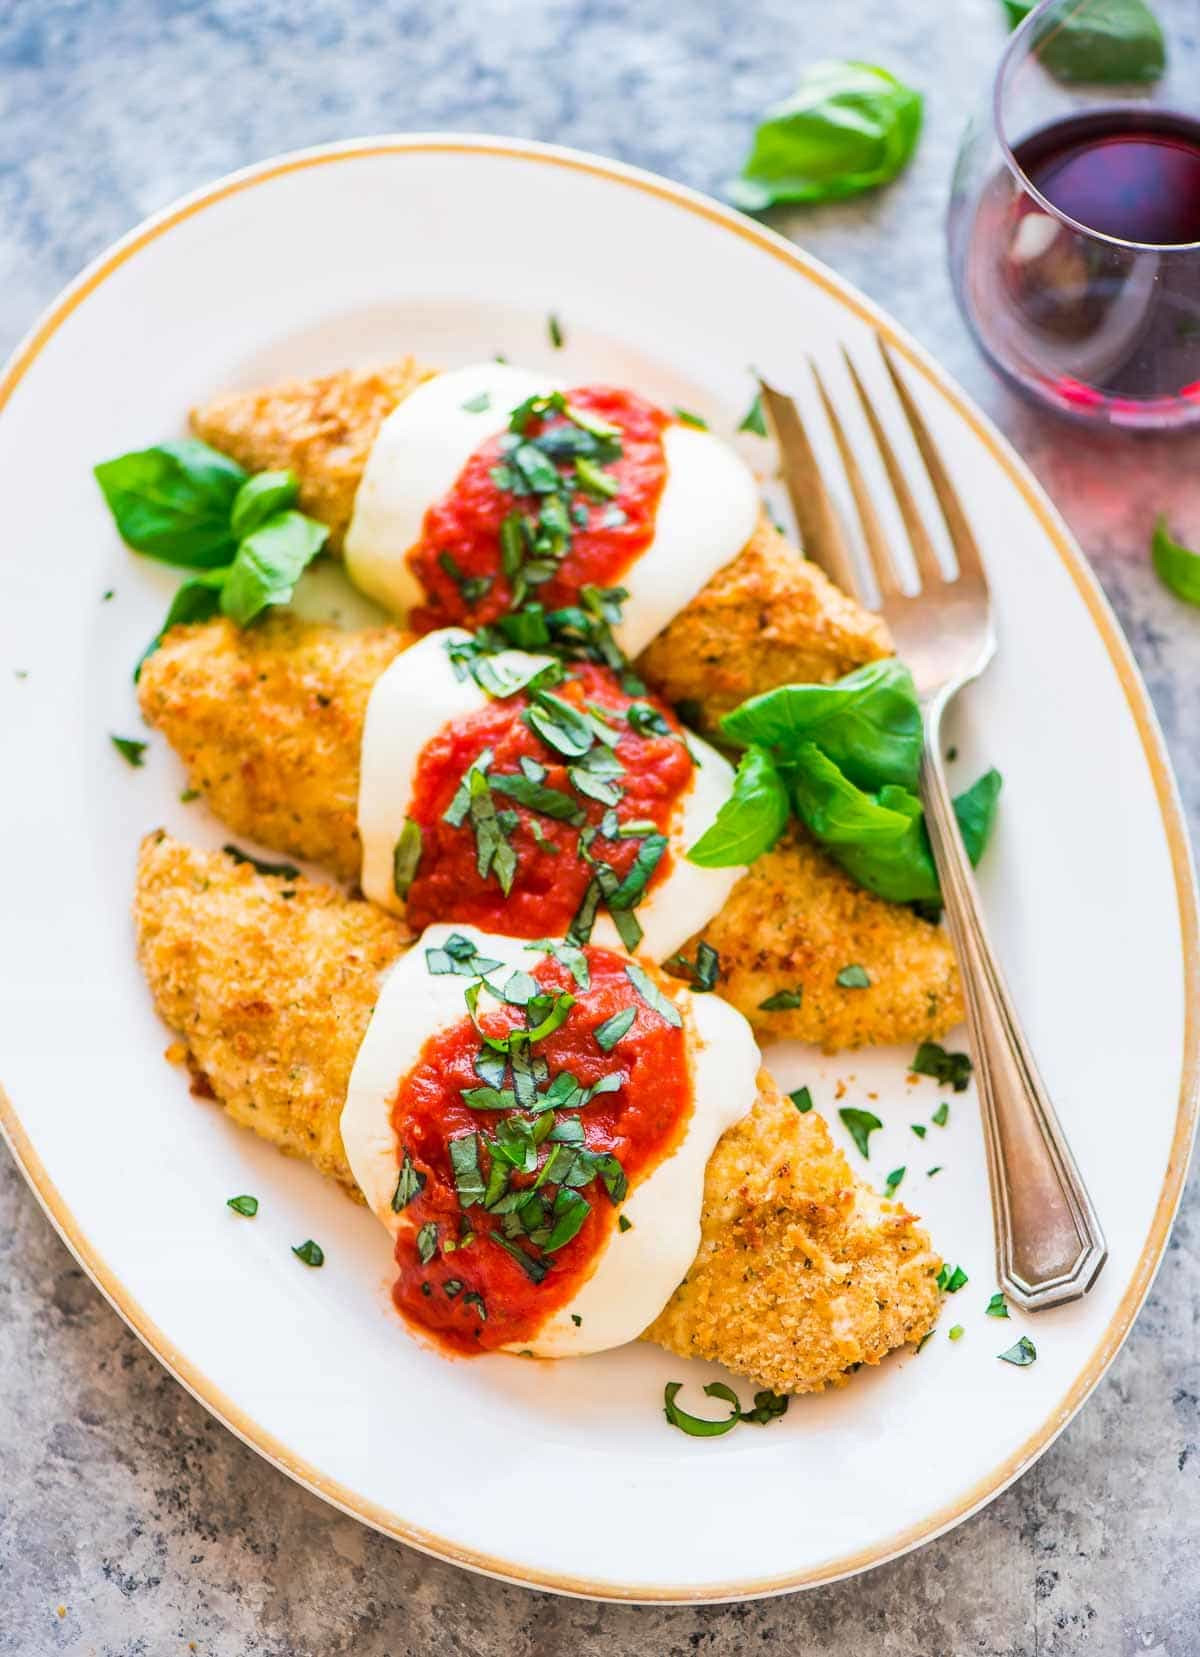 Is Baked Chicken Healthy  Baked Chicken Parmesan